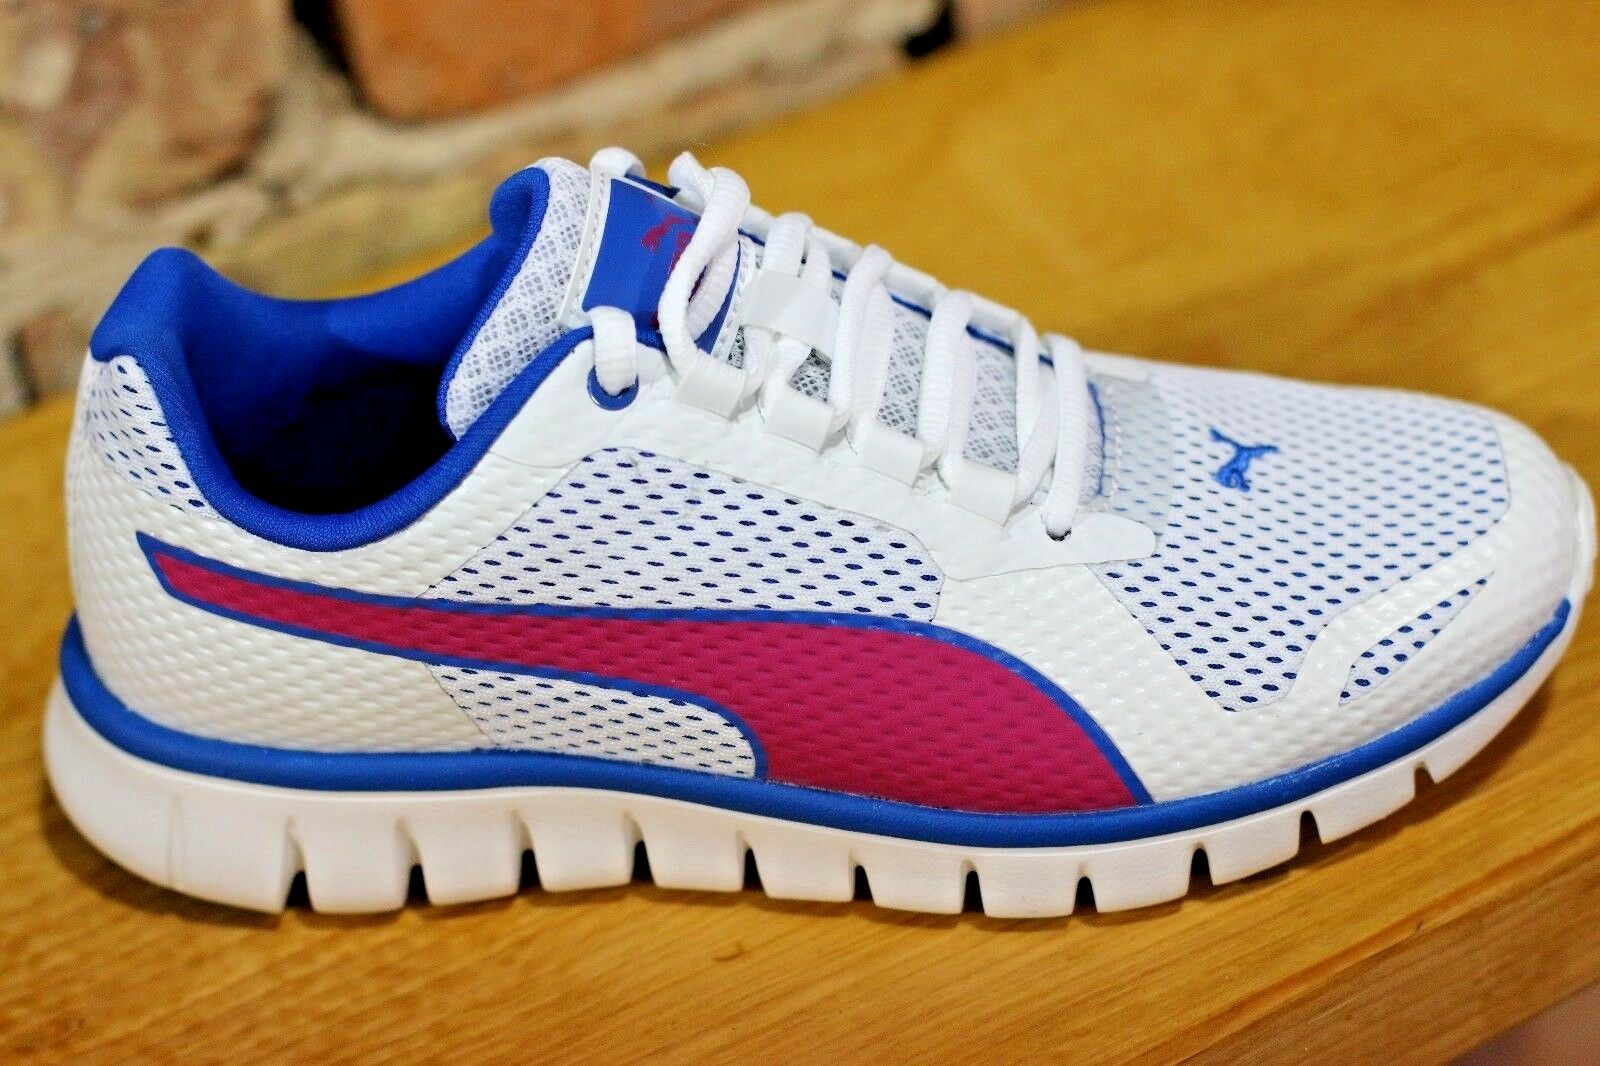 Puma shoes For Wome bluer Wn'S White Running and Fashion shoes